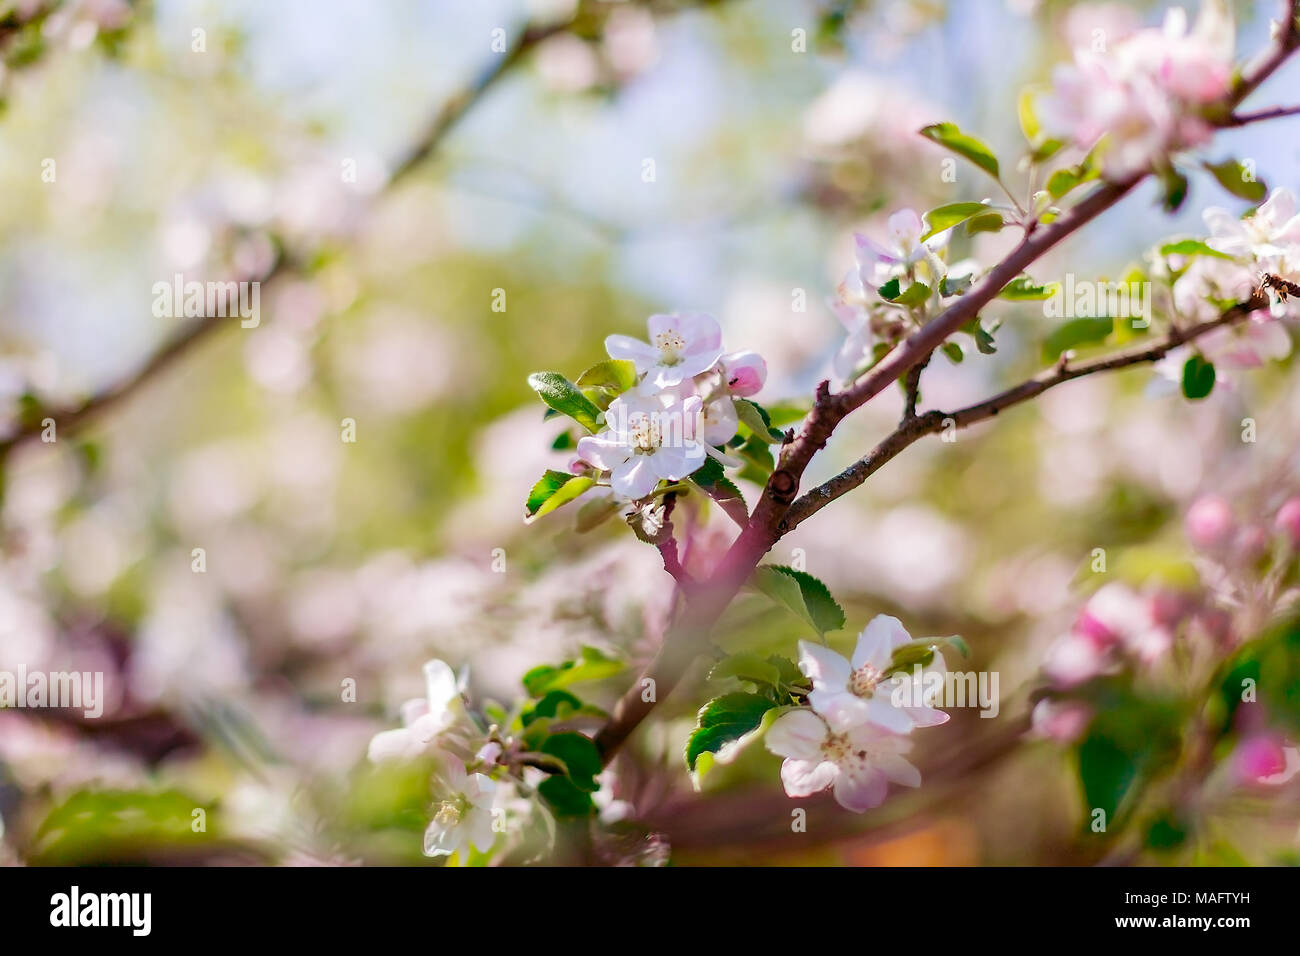 Beautiful Pink Blooms Of Apple Tree With Blurred Background Nature